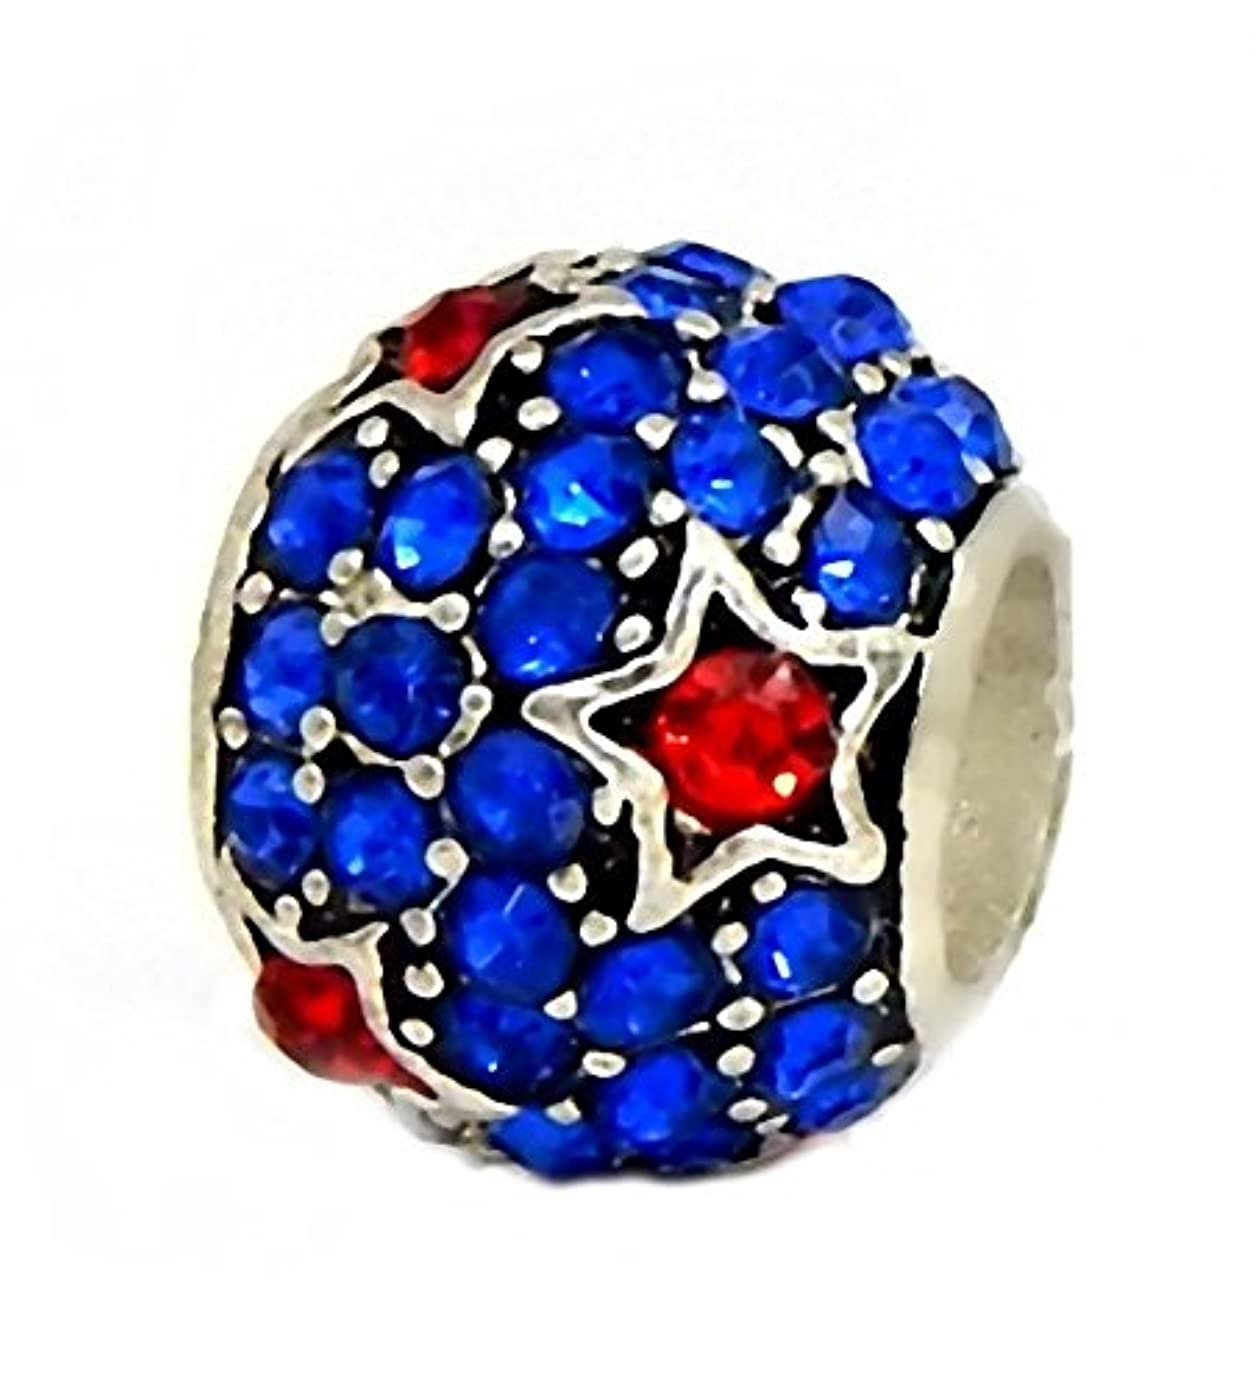 J&M Sapphire Blue Crystal Spacer Bead with Red Stars for Charms Bracelets